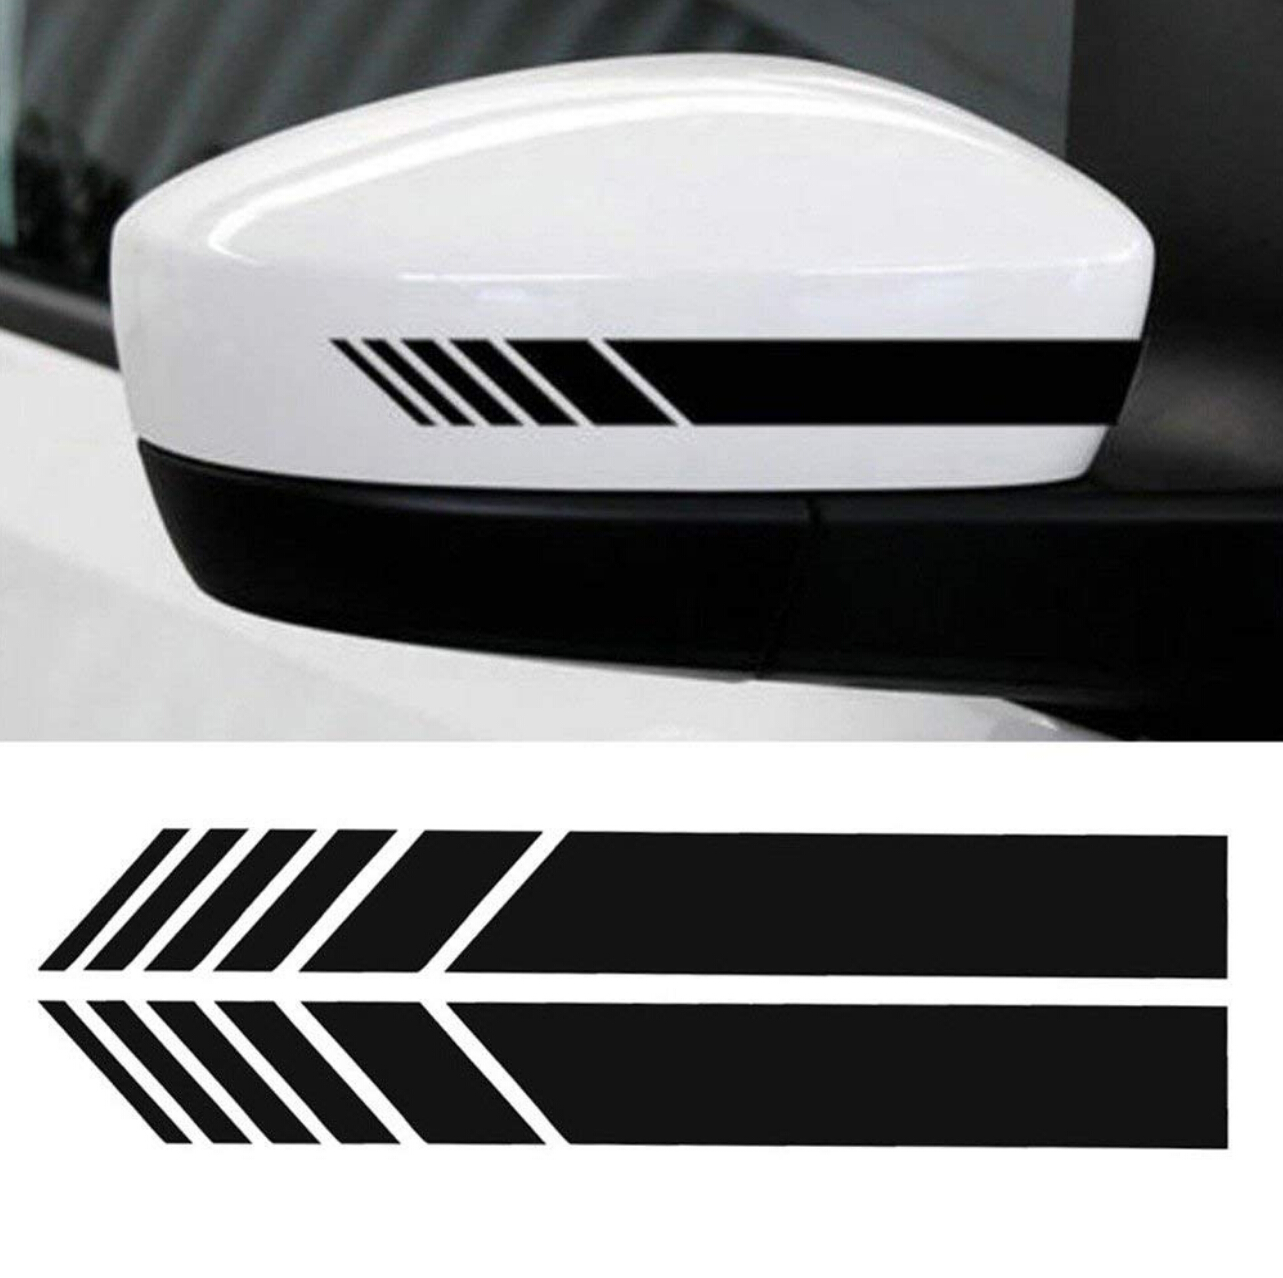 Exterior Accessories Special Section 2pcs Car Styling Auto Vinyl Sticker For Mercedes W211 Audi A3 8l Peugeot Toyota Avensis Peugeot 207 508 Audi A4ford Bmw F10 Cleaning The Oral Cavity.